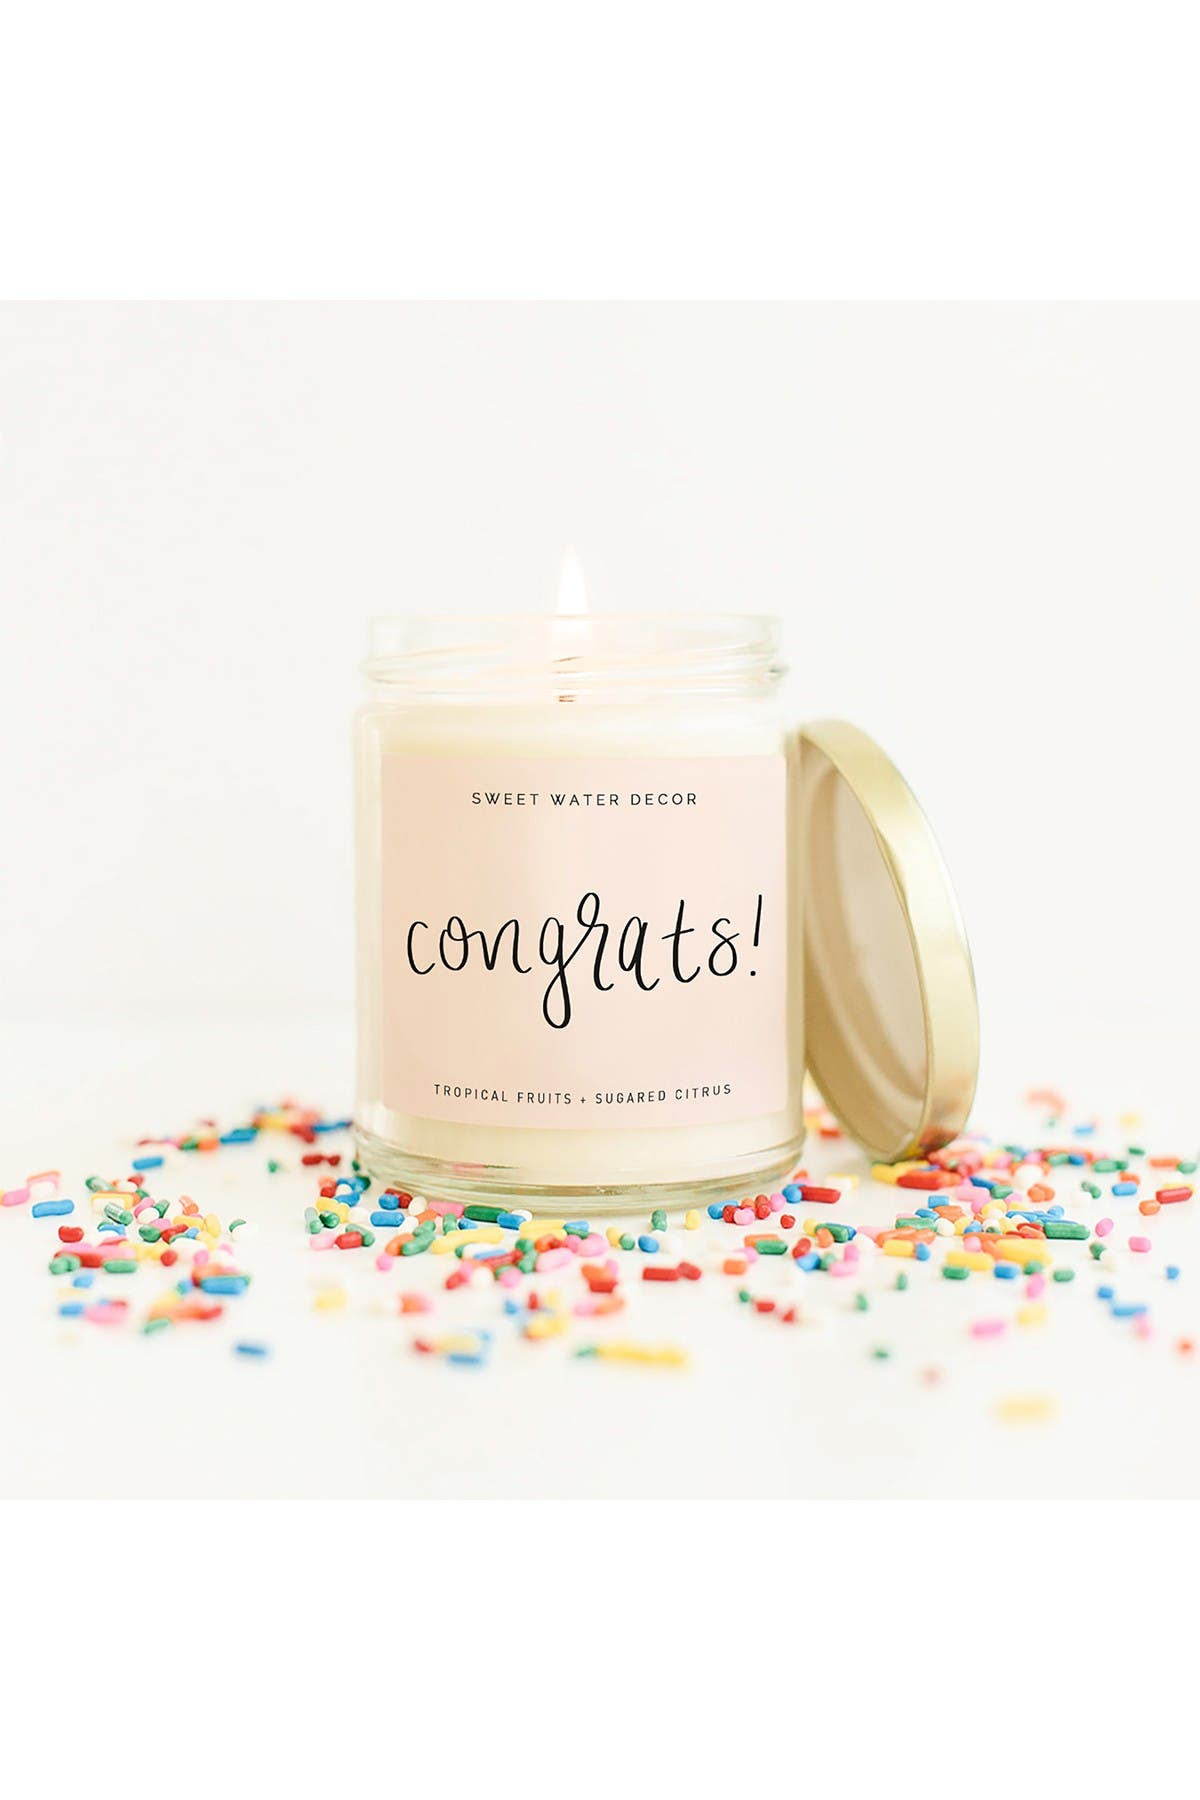 Image of SWEET WATER DECOR Congrats 9 oz. Soy Candle - Set of 2